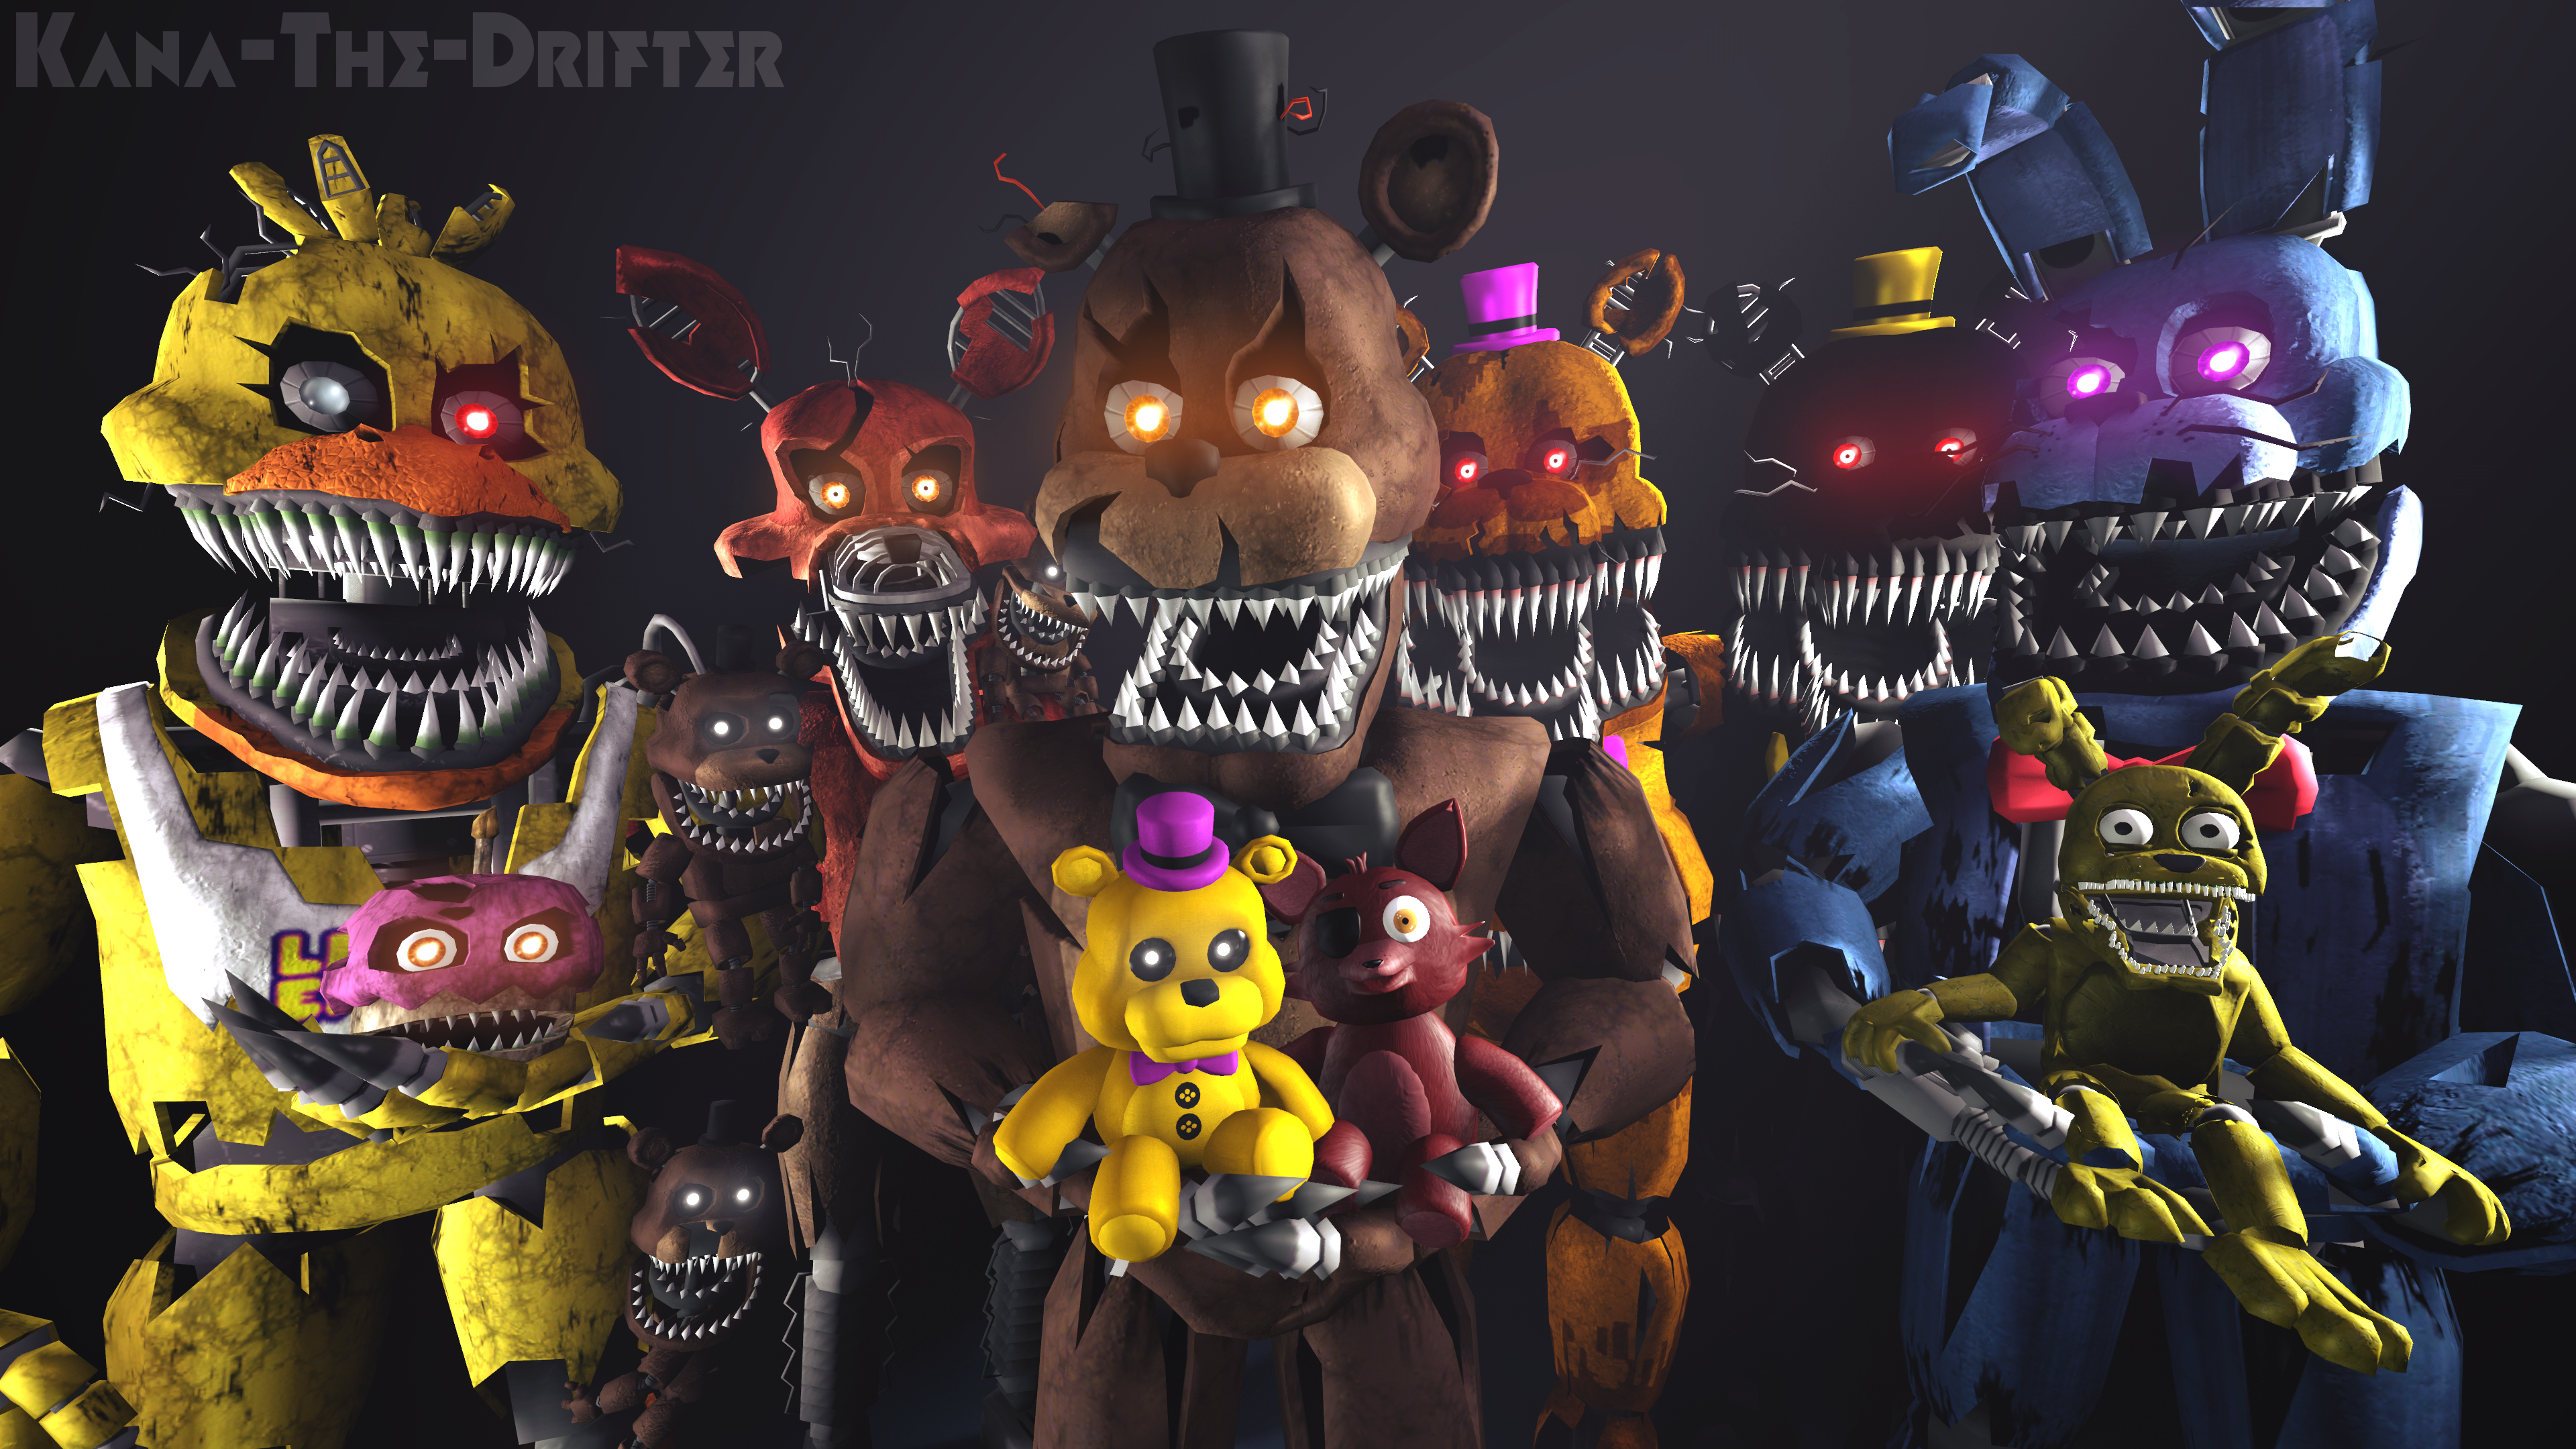 We All Are Still Your Friends (FNAF SFM Wallpaper) by Kana